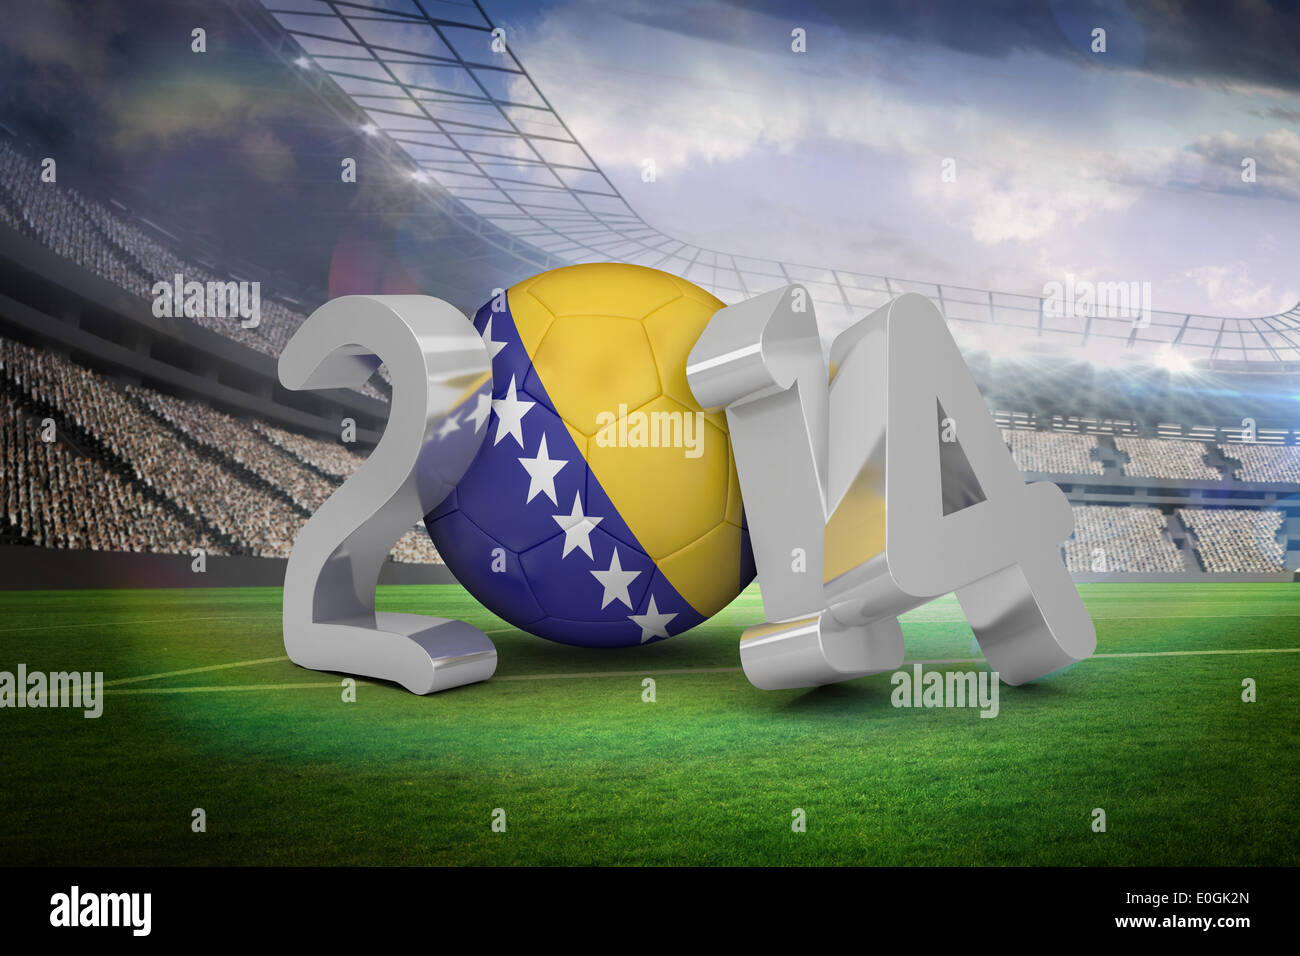 Bosnia world cup 2014 - Stock Image